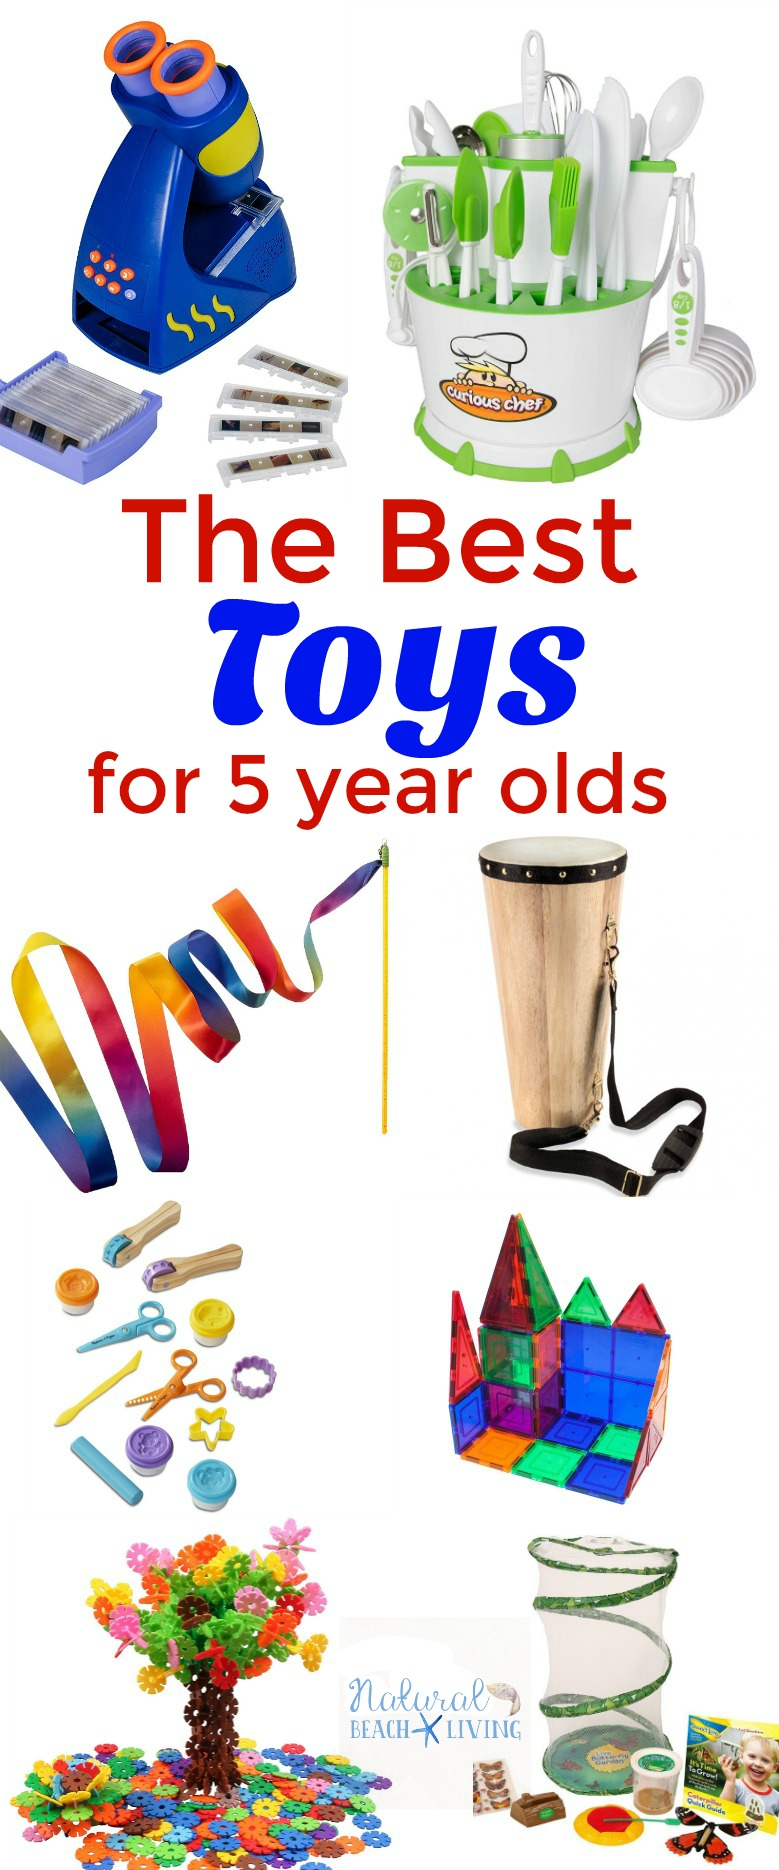 Toys For Boys 5 Years Old : The best montessori toys for year olds natural beach